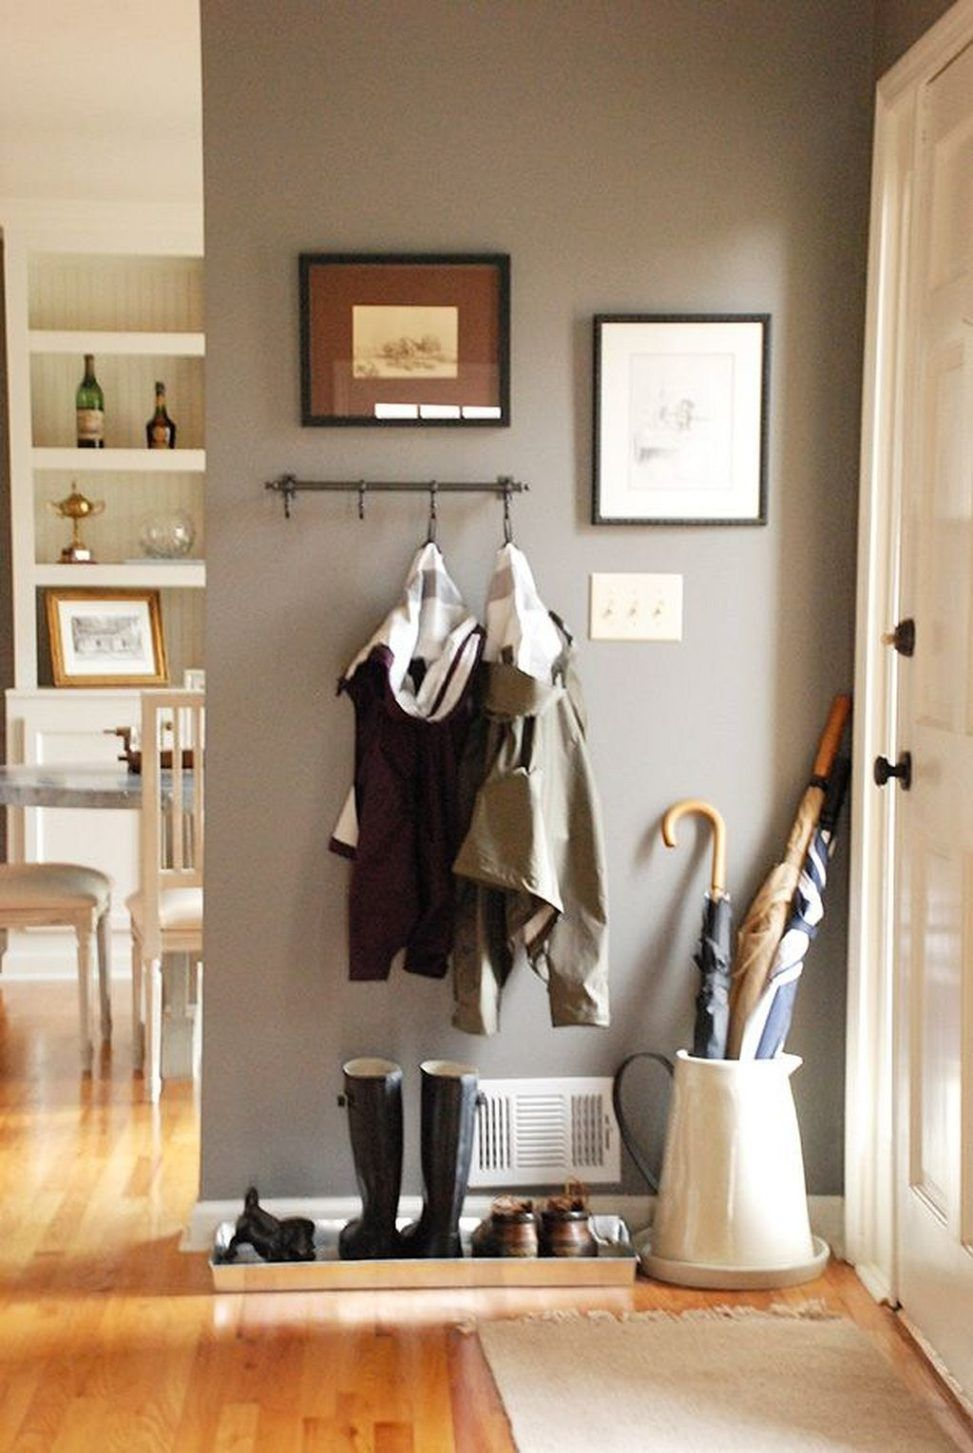 Awesome Small Entryway Ideas For Small Space With Decorating Ideas (25) in  2020 | Home, Home decor, House styles